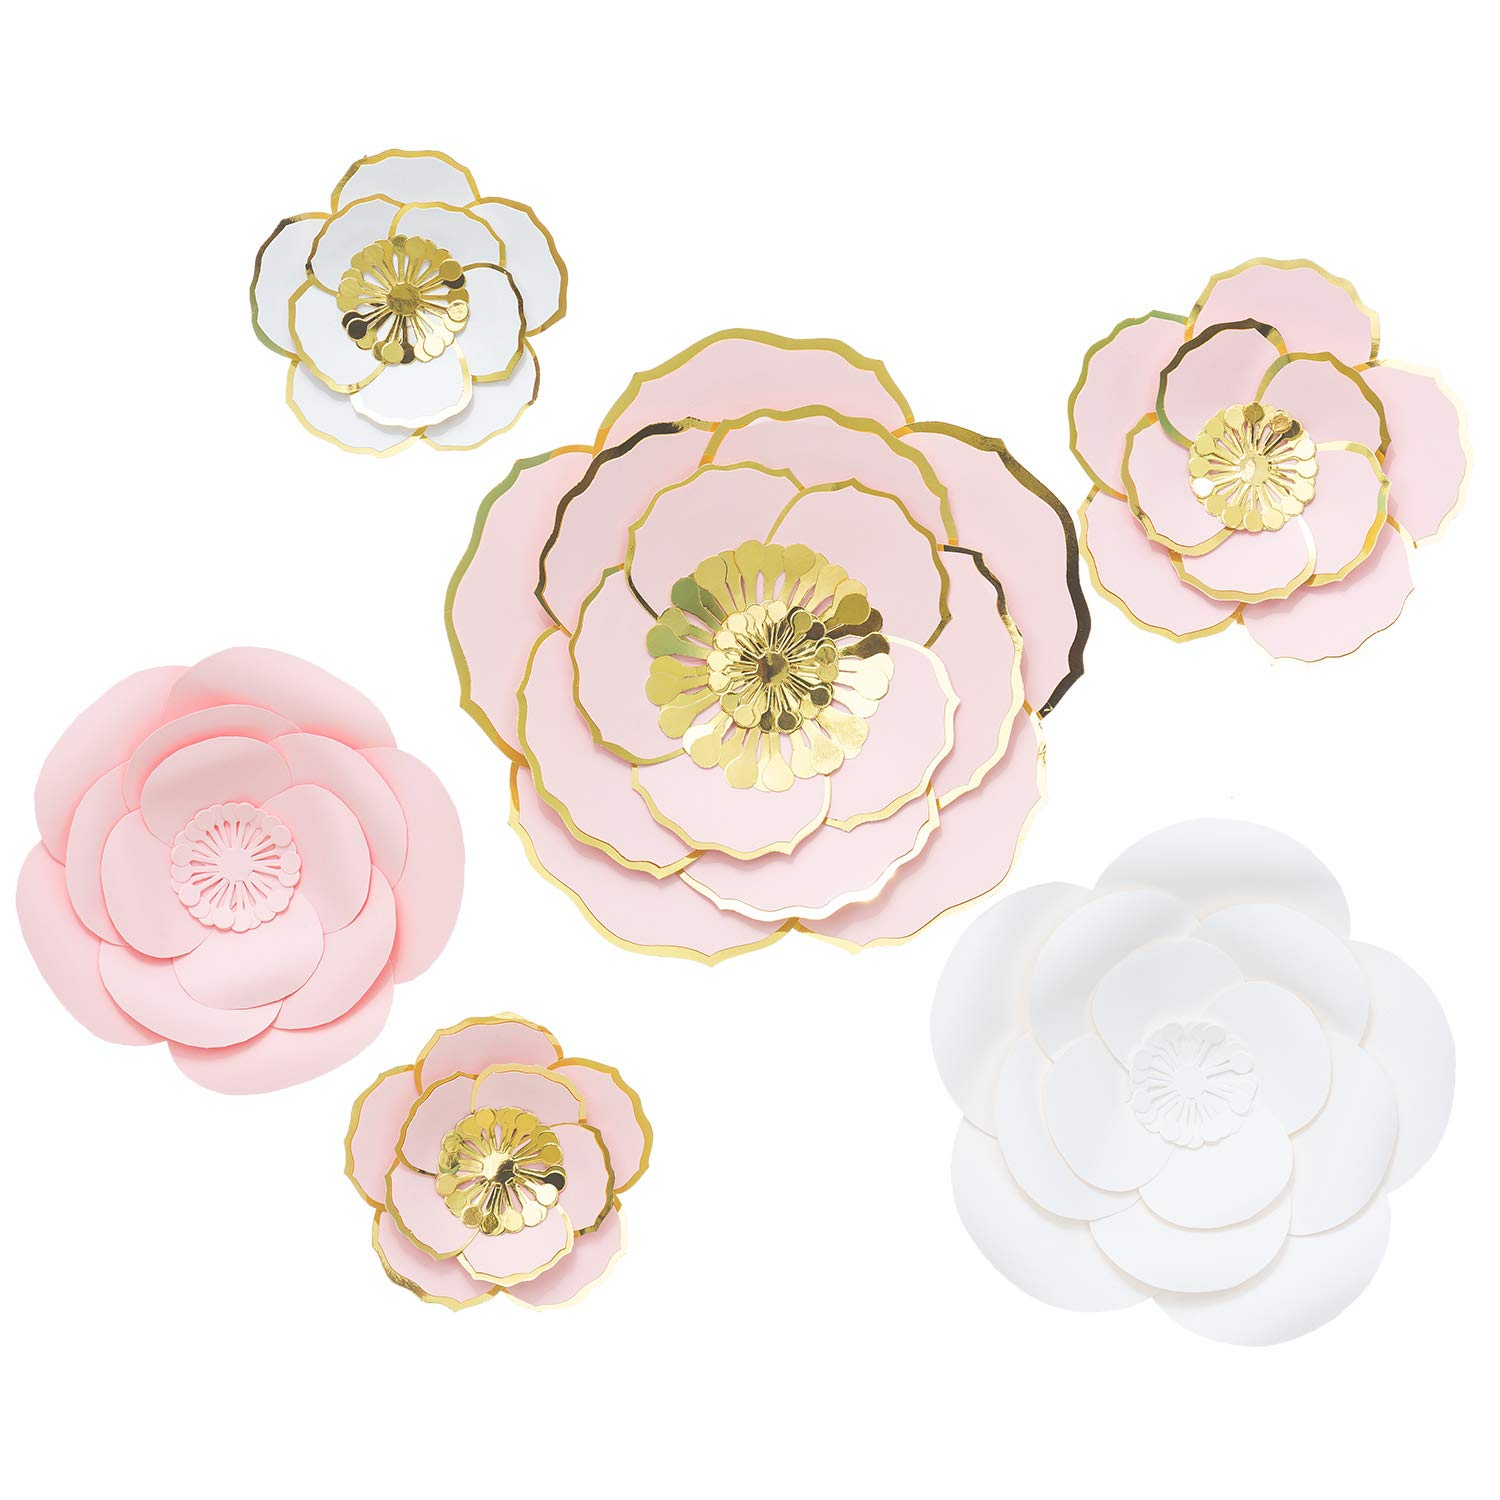 MEJOY Paper Flower Decorations, 6 Piece White Pink and Blush 3D Paper Flower Set, Large Paper Flowers for Nursery Wall Decor,Wedding, Baby Shower Backdrop, Archway, Home Decor